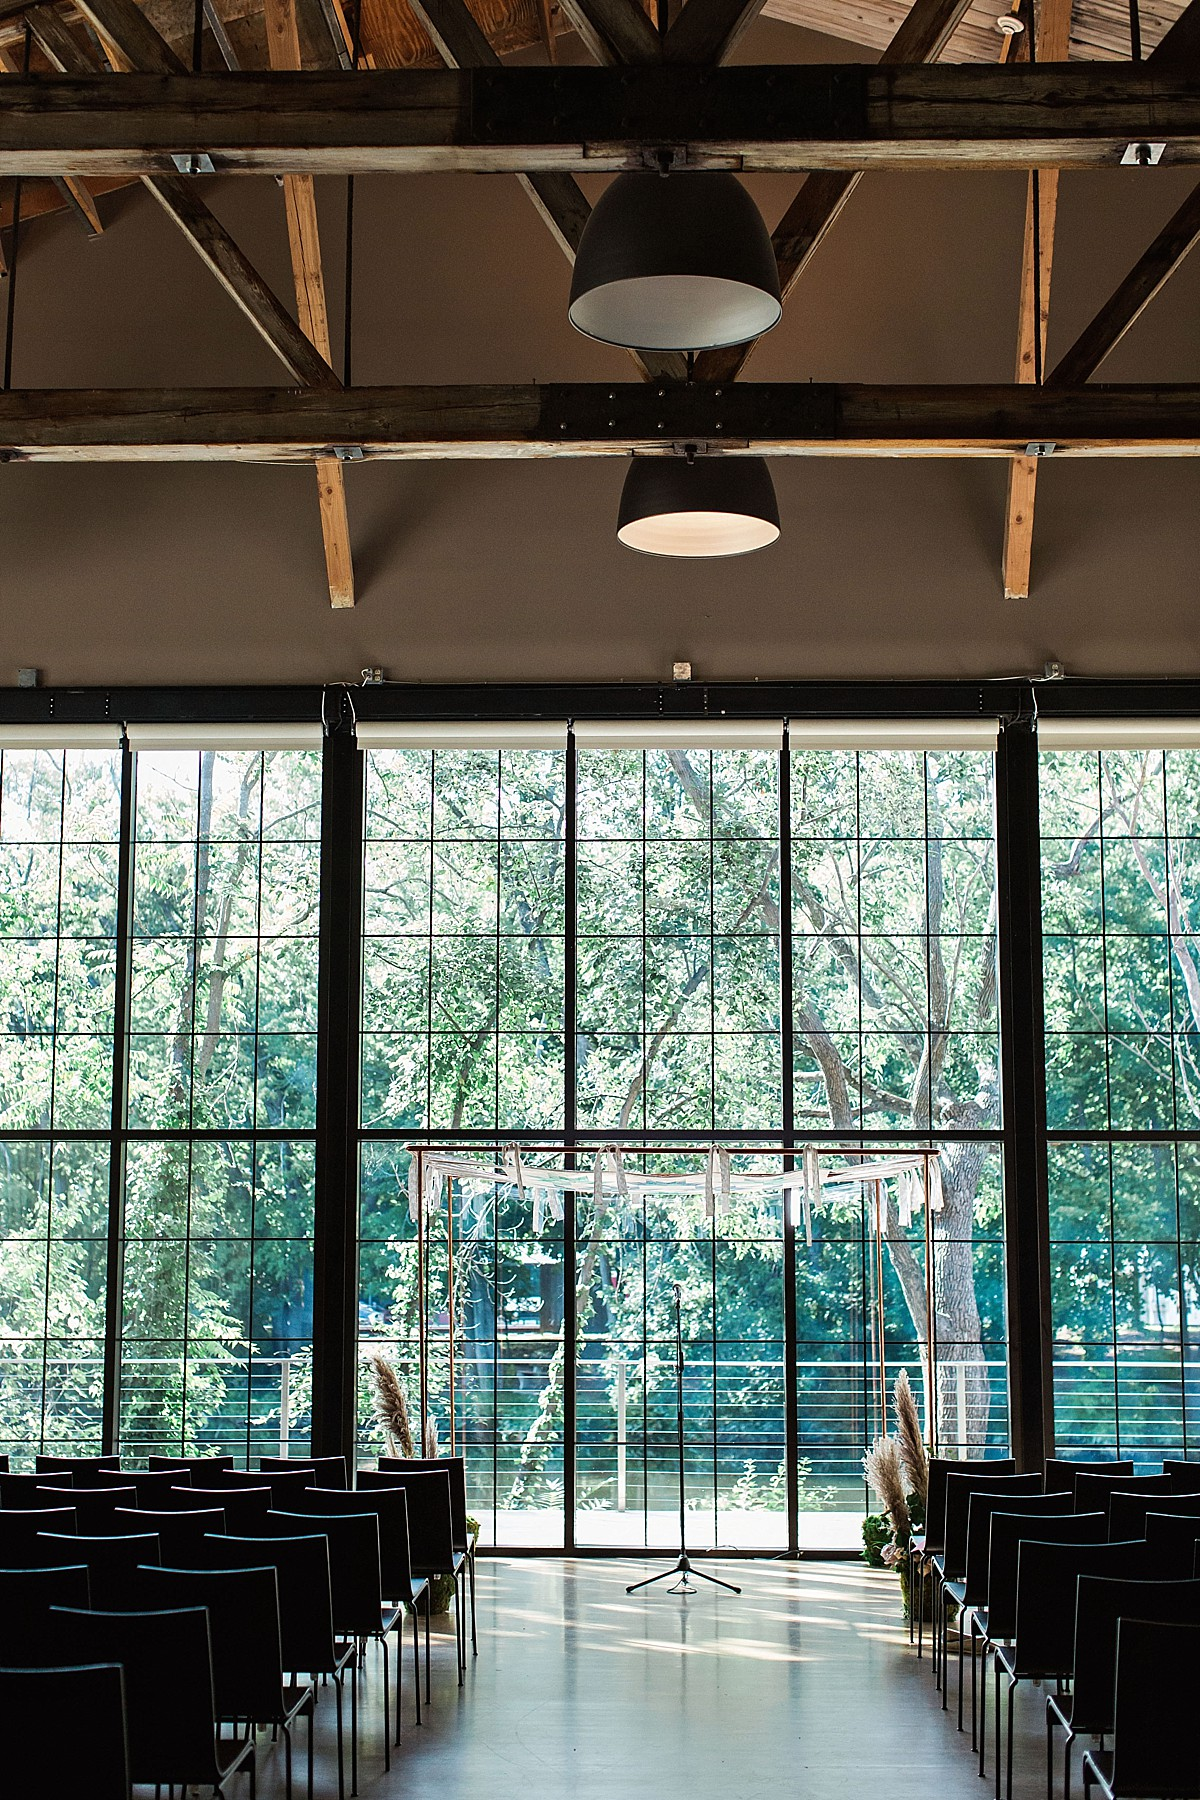 Ceremony space at the Roundhouse in Beacon, NY by Clean Plate Pictures, Hudson Valley Wedding photographer.